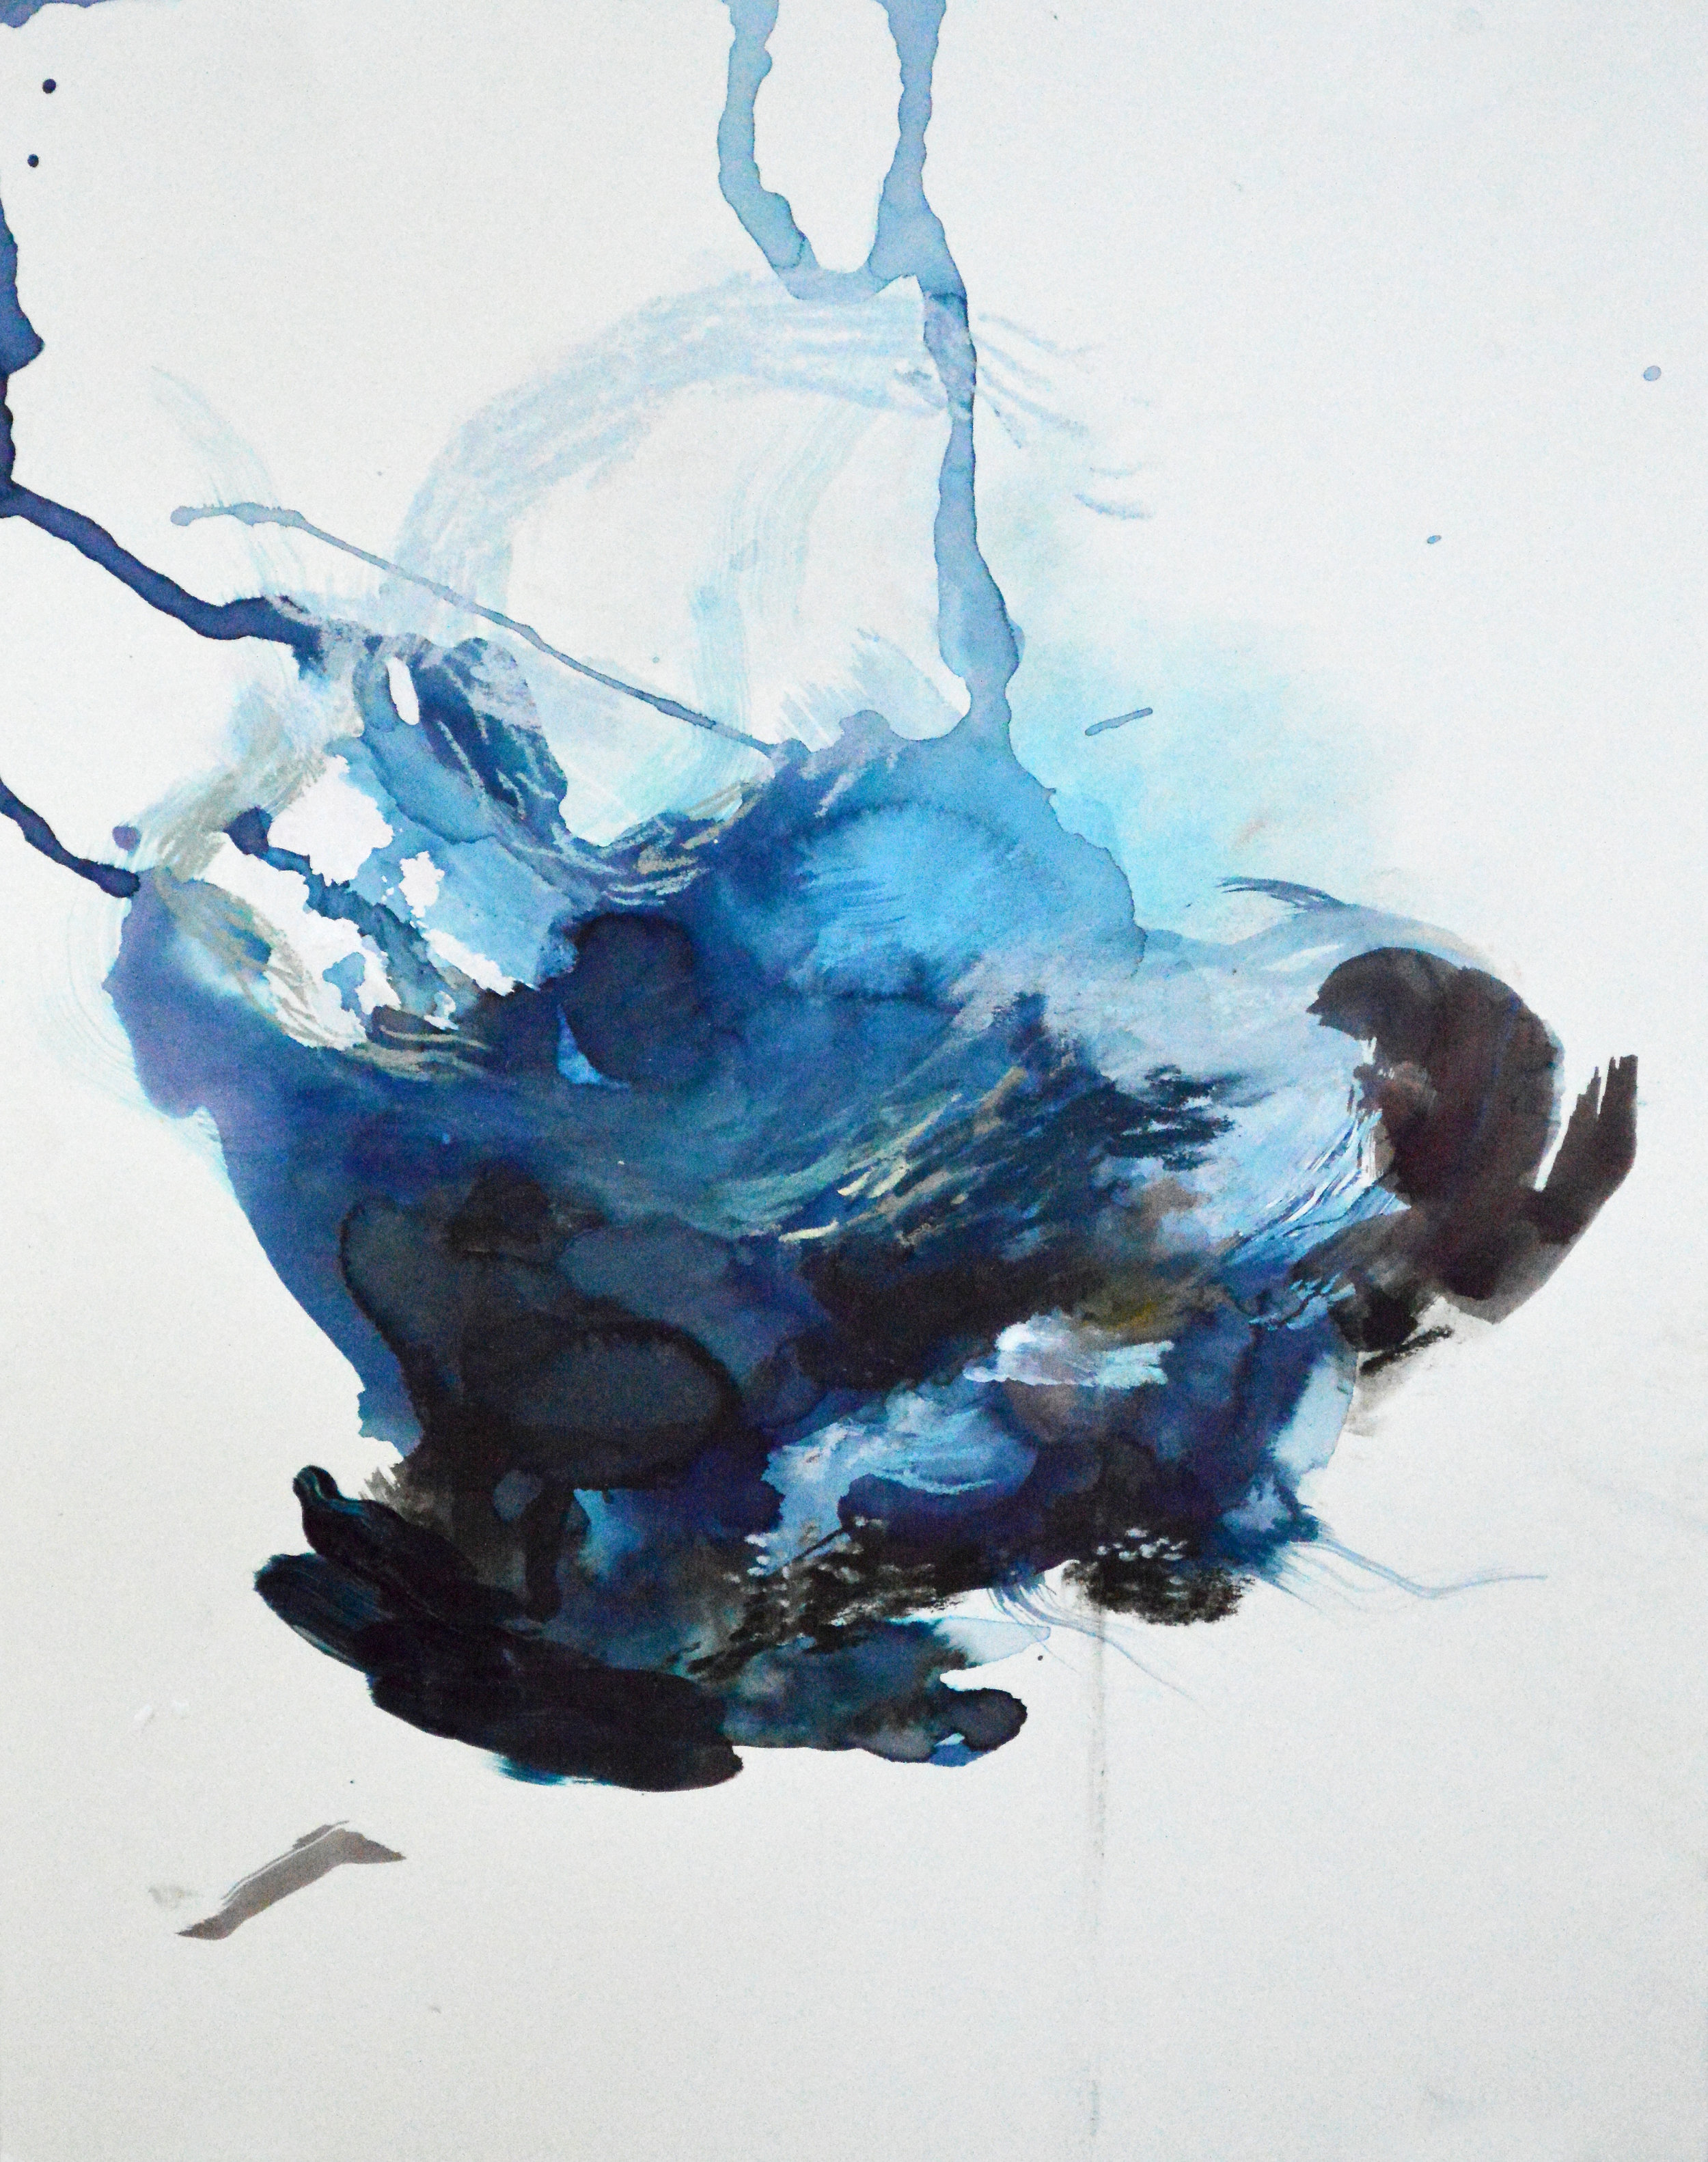 Blue, 11 x 14 inches